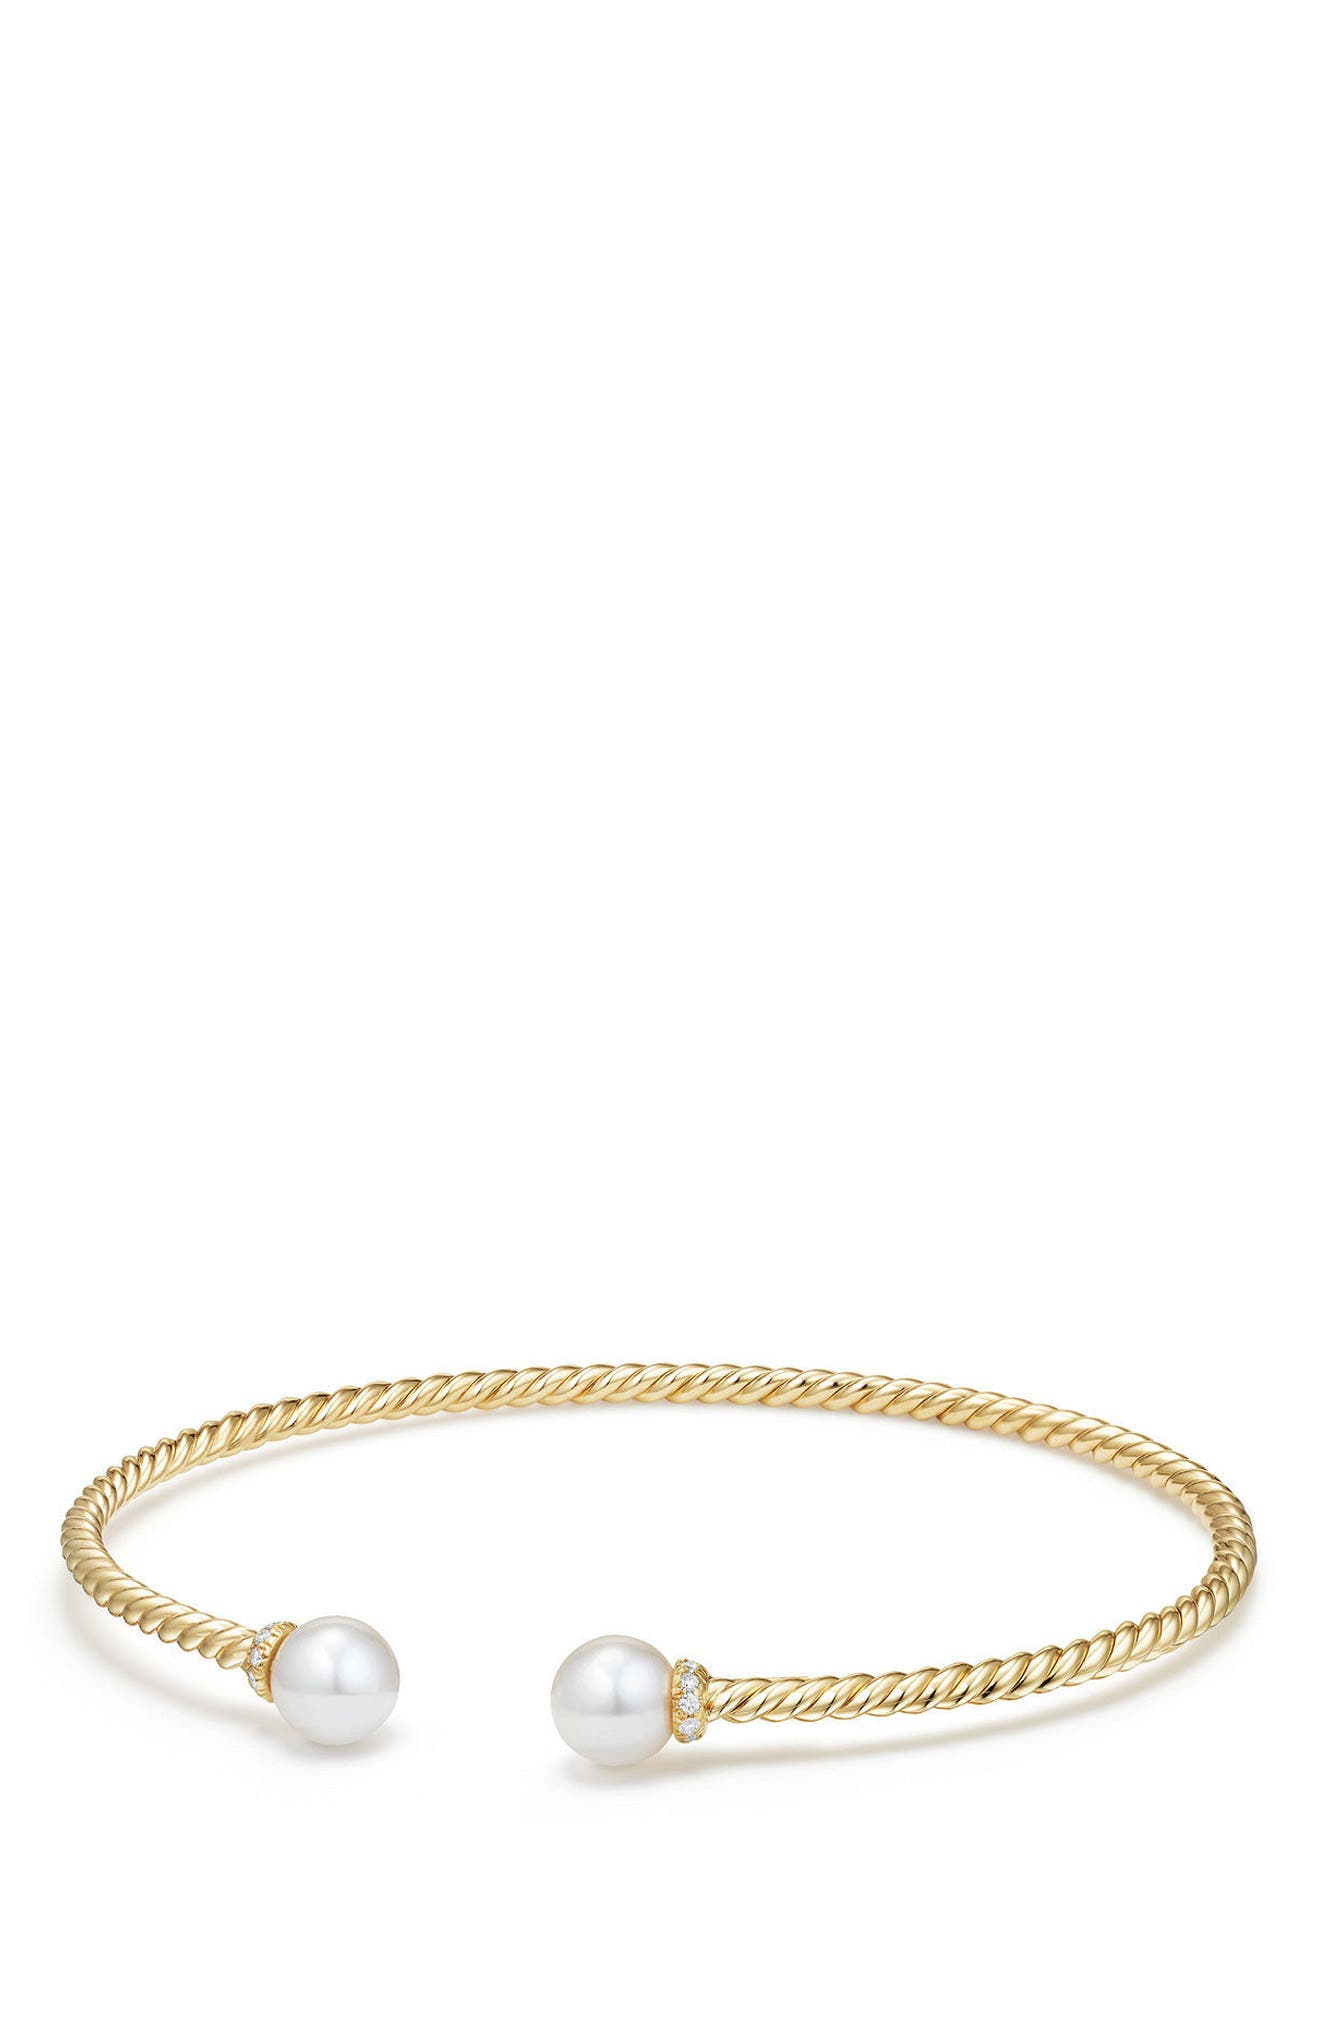 Solari Pearl Bracelet with Diamonds in 18K Gold,                         Main,                         color, Yellow Gold/ Diamond